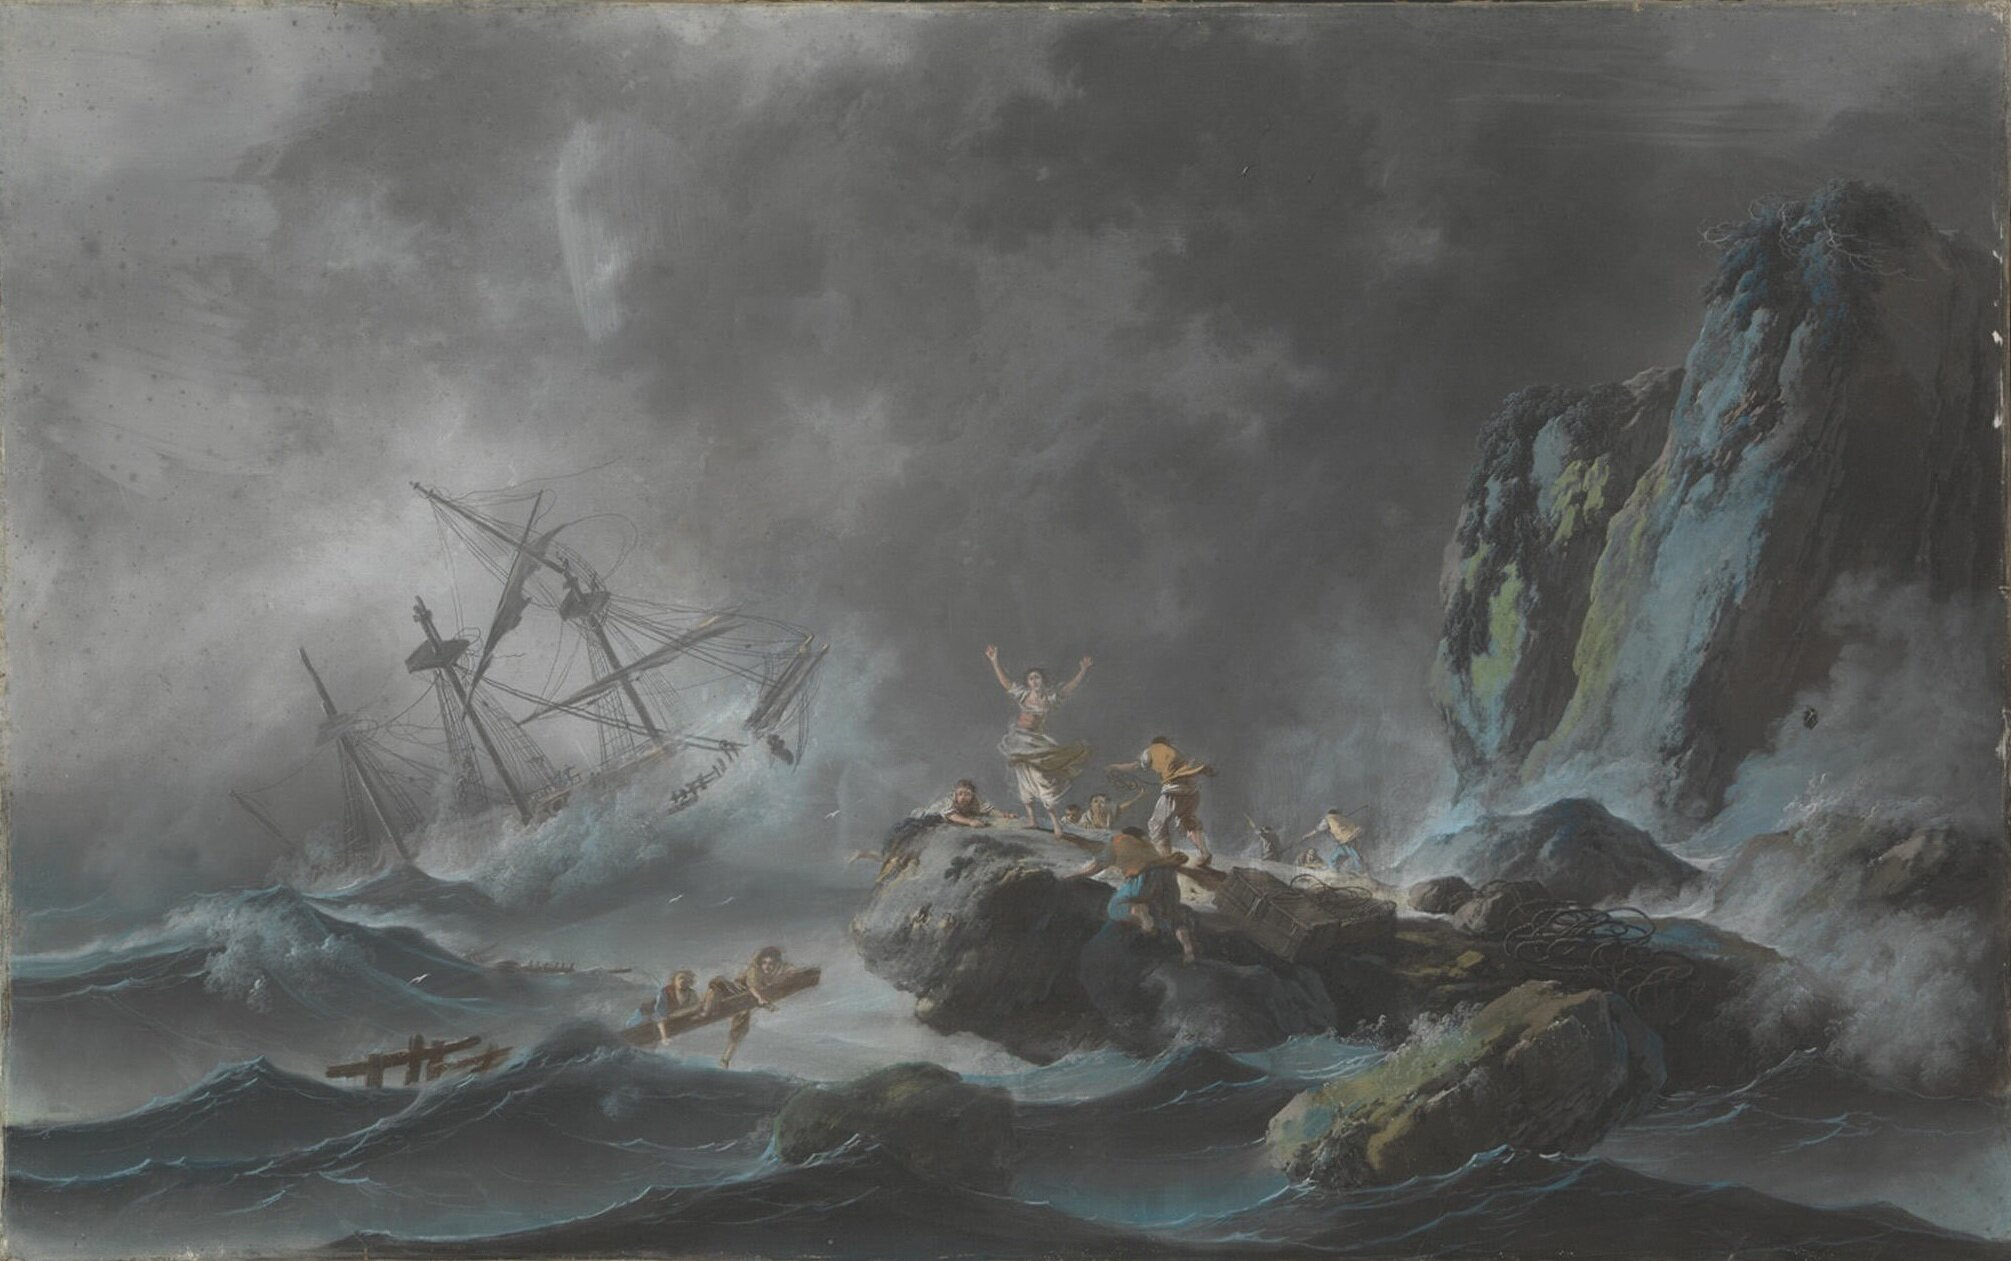 "A Shipwreck in a Storm, 1782, Jean Pillement (French, Lyons 1728–1808). Pastel on gessoed canvas, 24 3/4"" x 36"", pastels & oil sketches on paper. Photo courtesy of the Metropolitan Museum of Art."